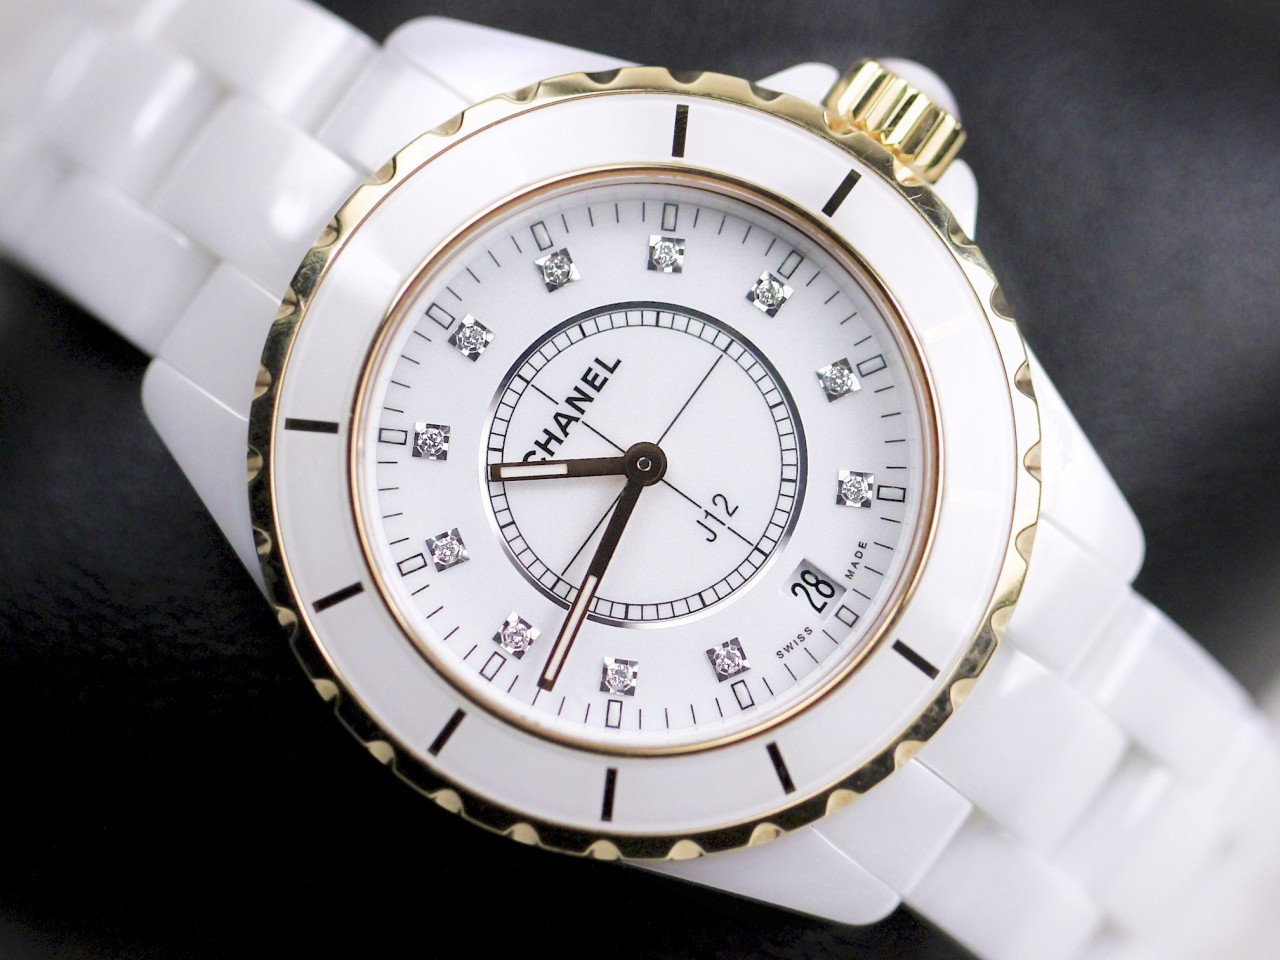 en jewellery fine diamonds mini ref women chanel gold white premiere womens watches designers